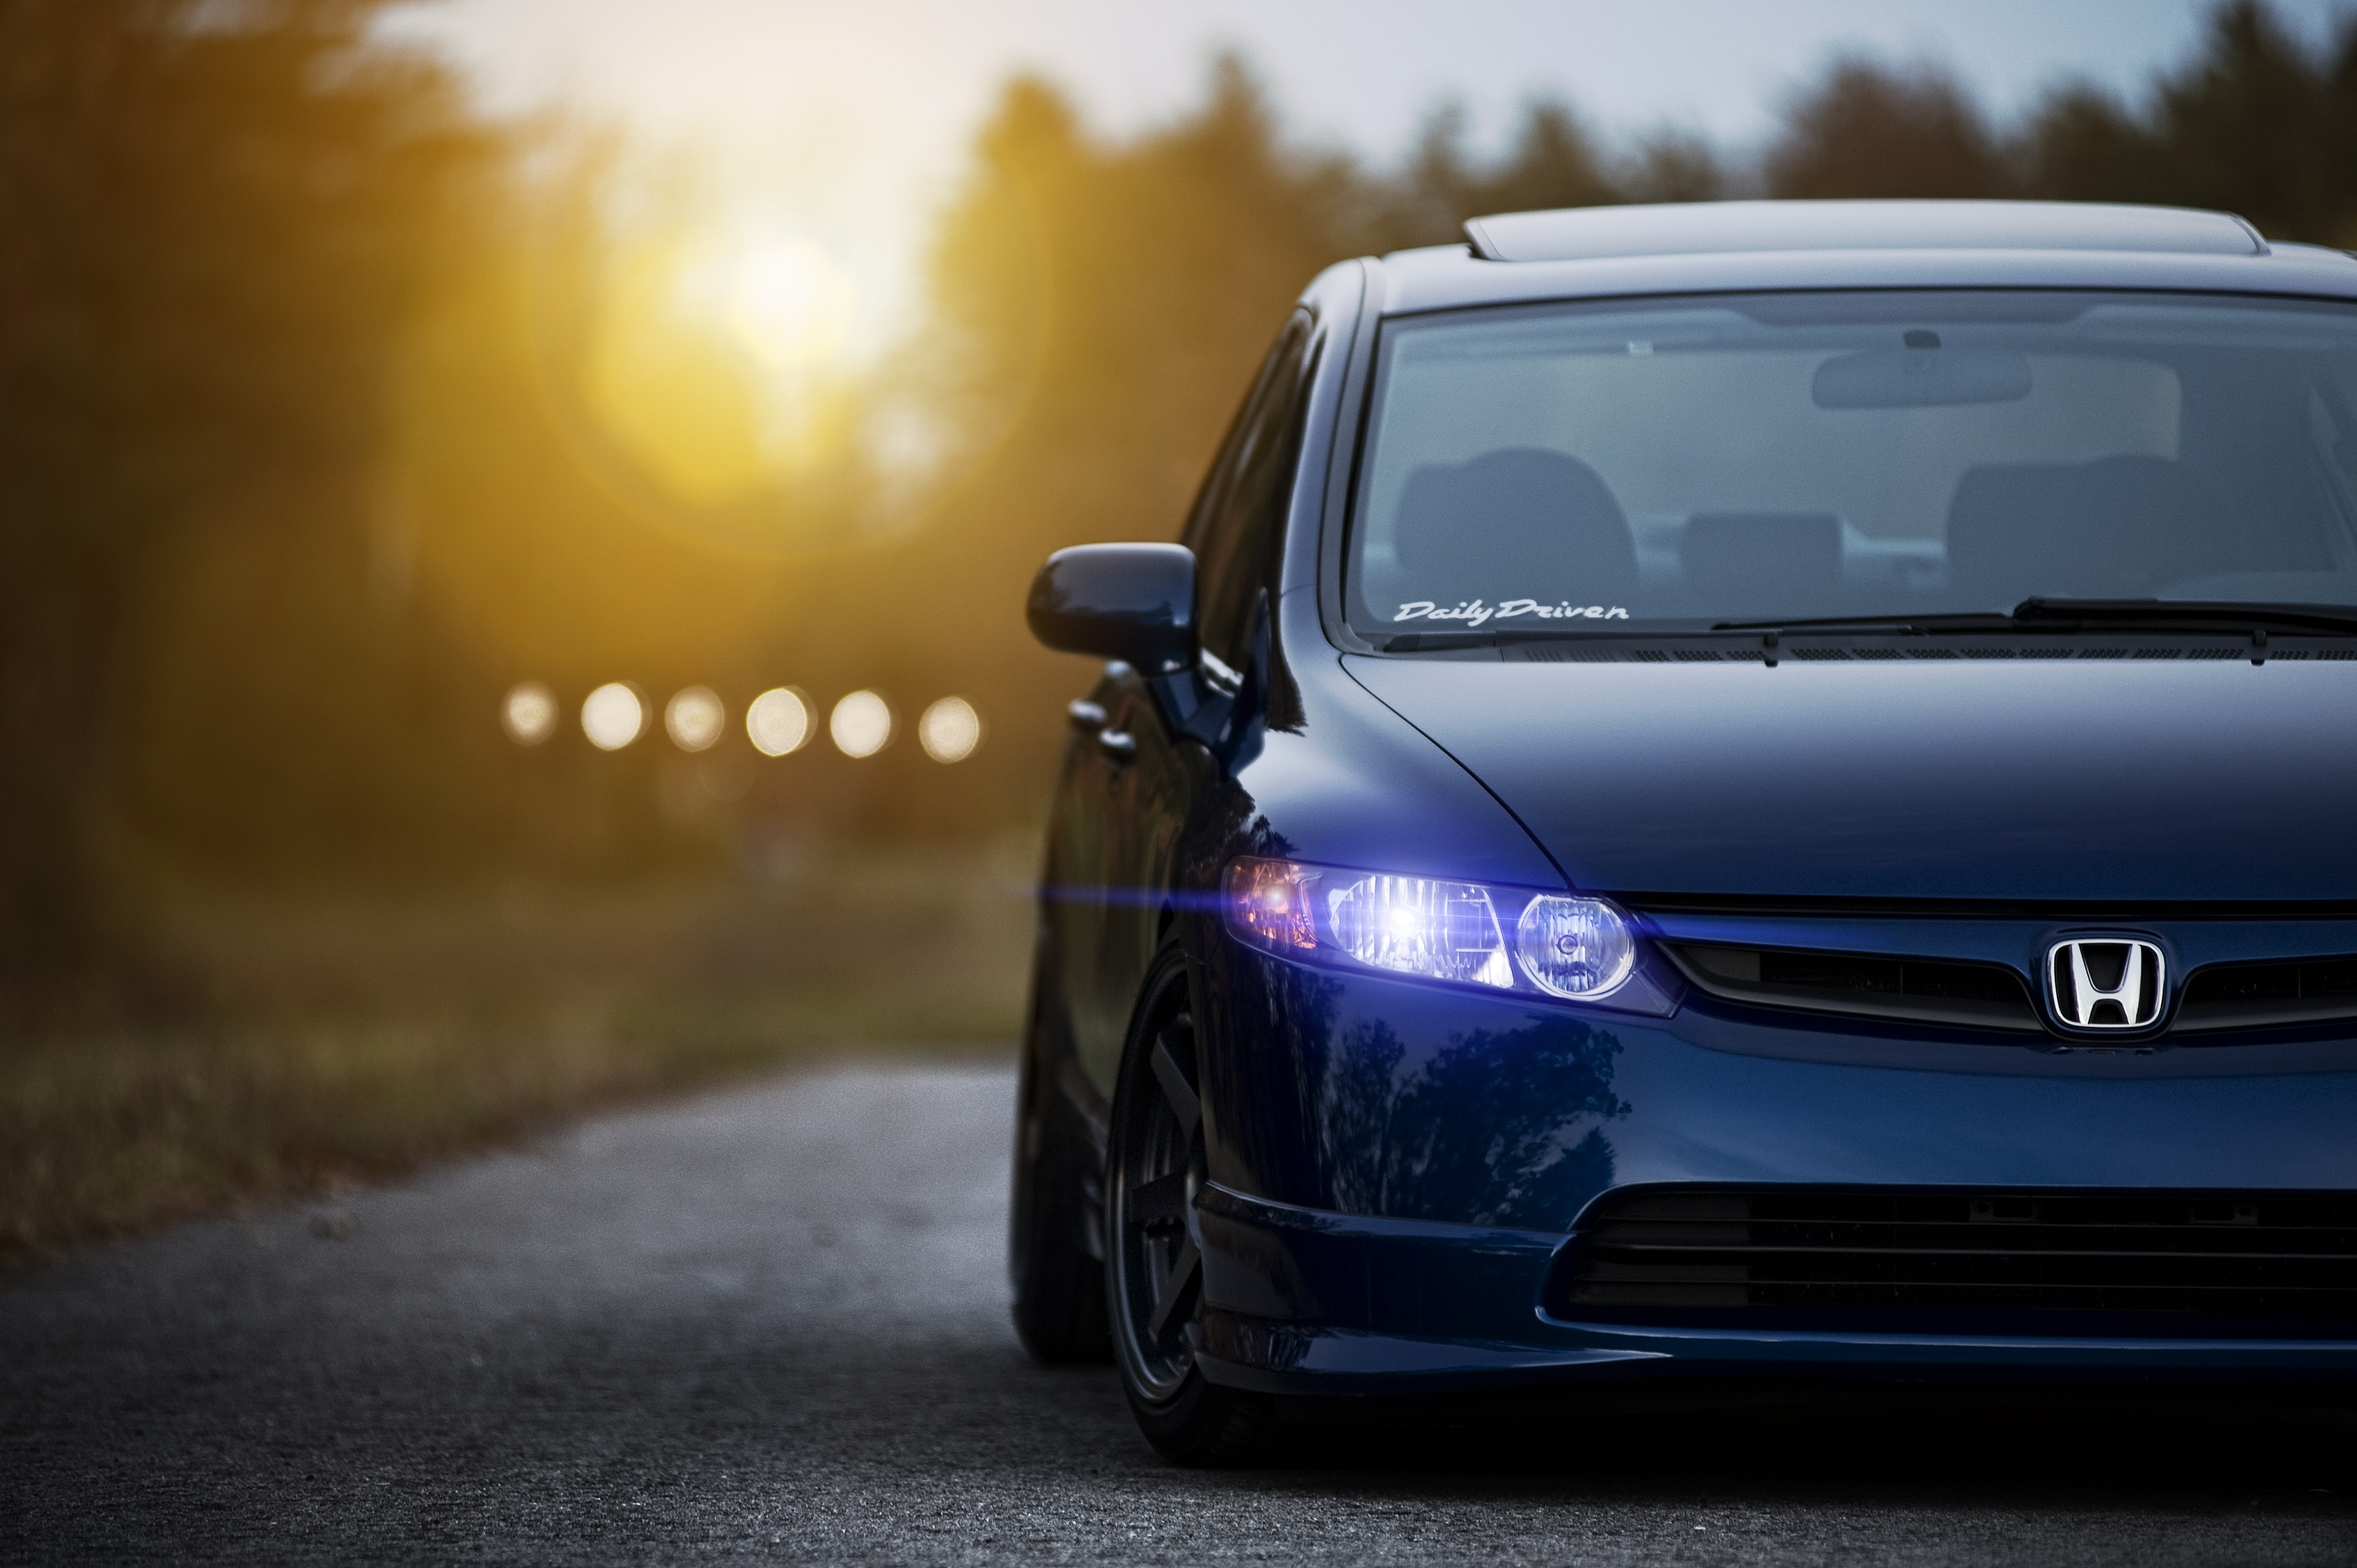 23 honda civic hd wallpapers | background images - wallpaper abyss